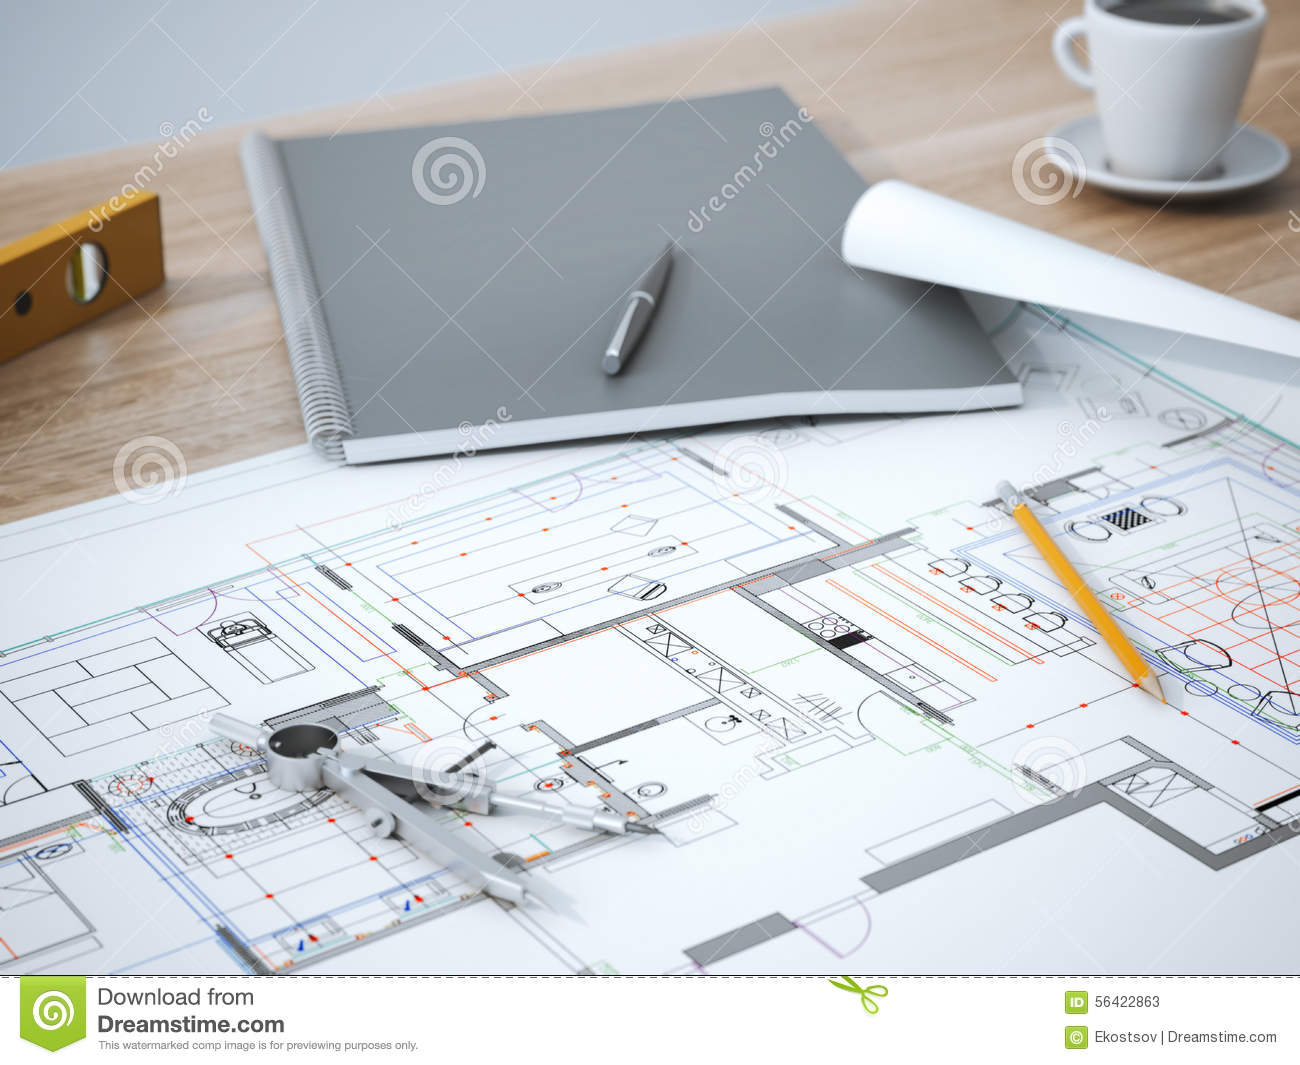 Blueprint on table stock image image of design object 56422863 blueprint on table malvernweather Gallery